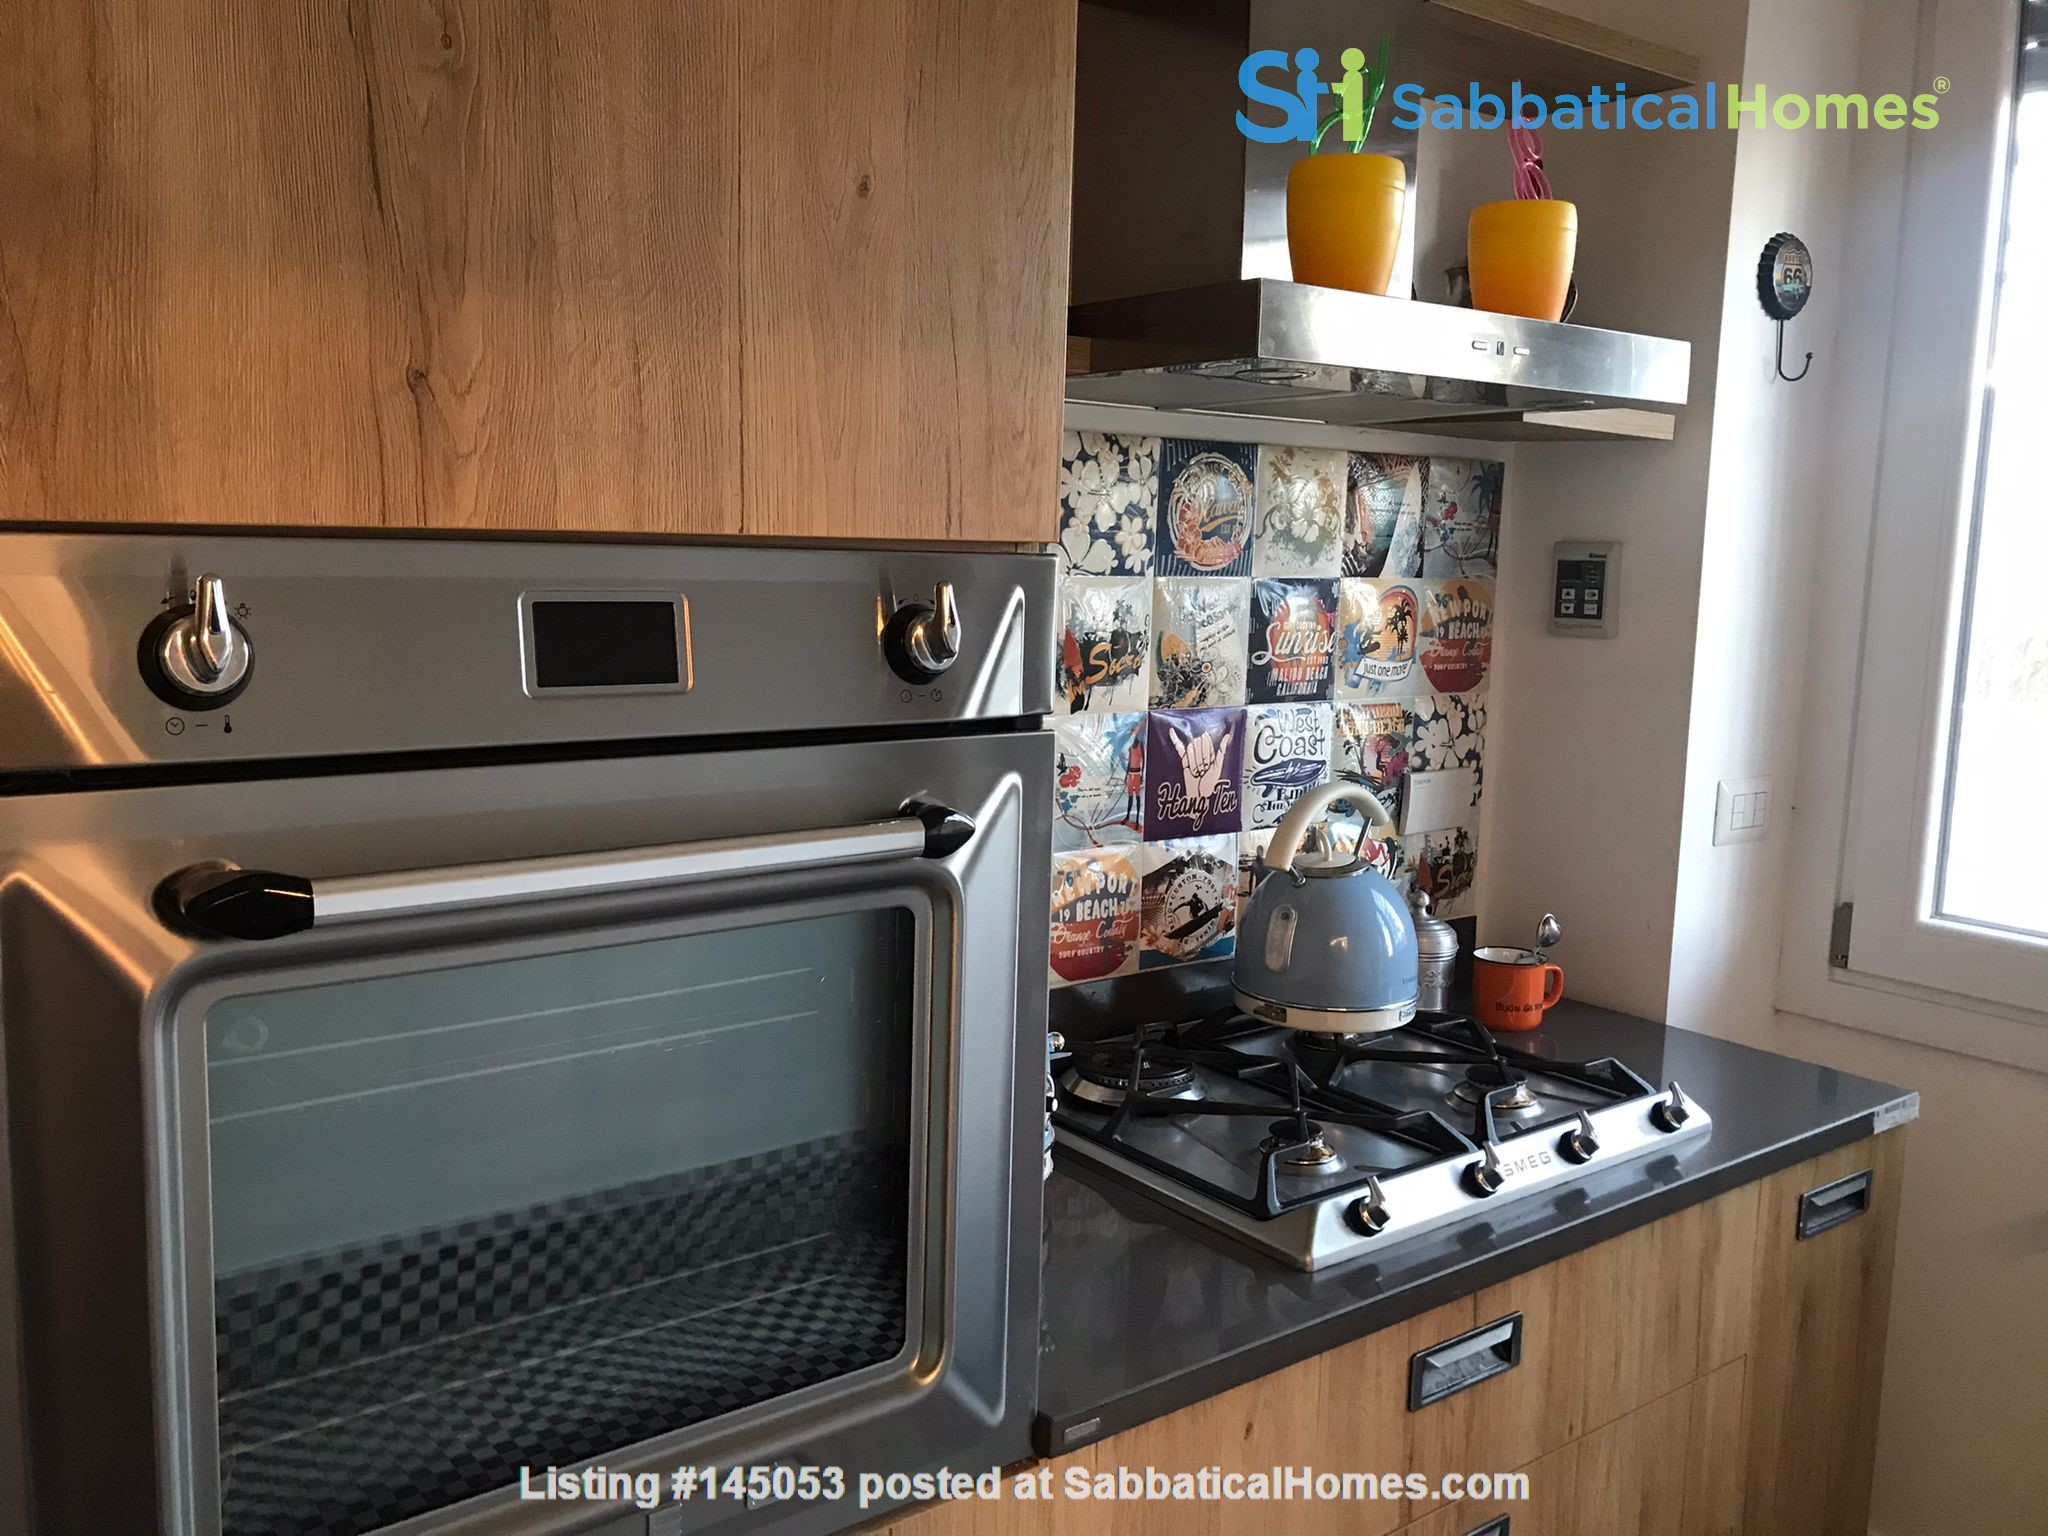 University Sacro Cuore - Brightly apartment with large terrace. Home Rental in Roma, Lazio, Italy 3